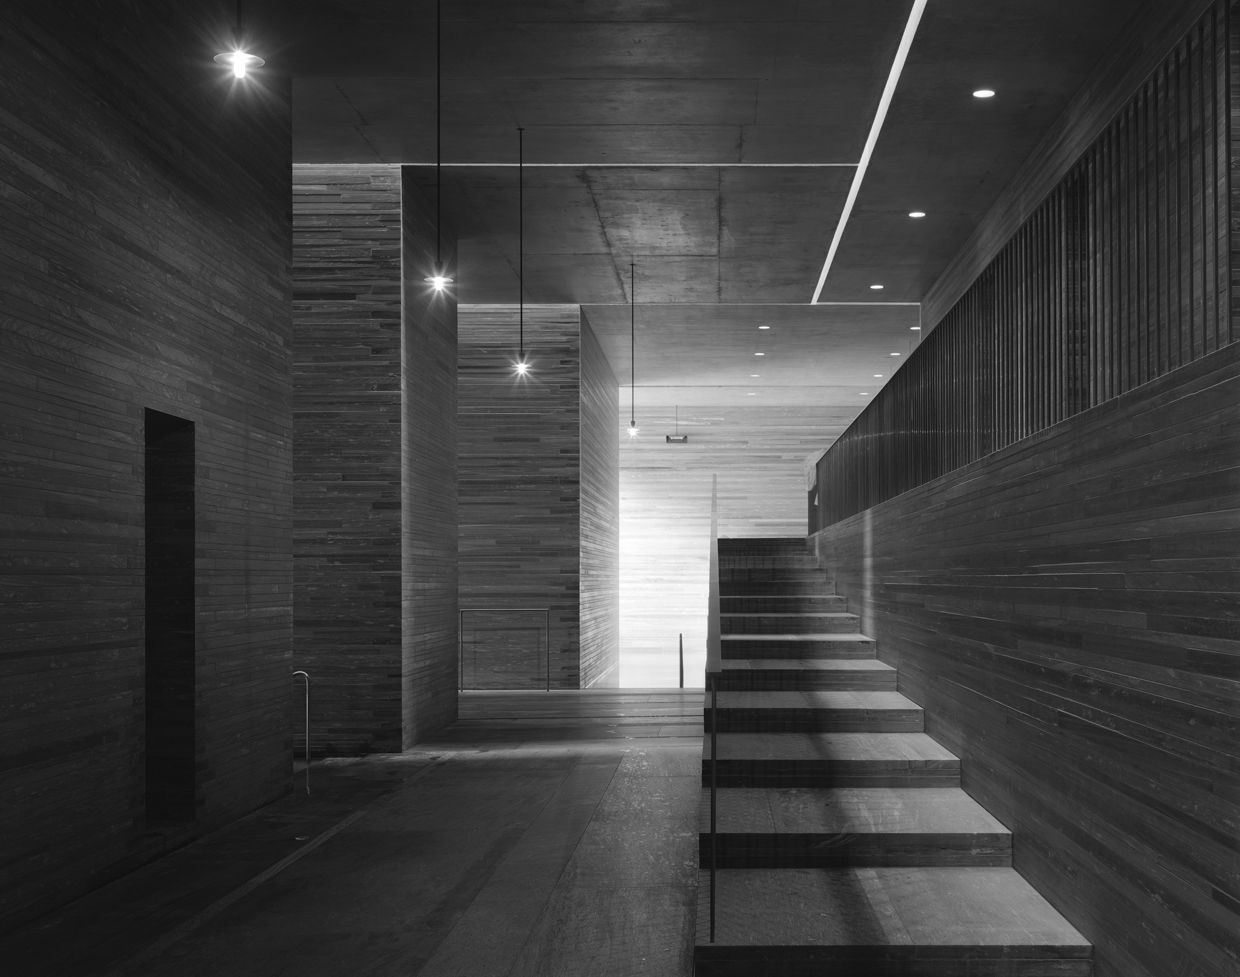 thermes de vals peter zumthor architecture pinterest thermes de vals peter zumthor et. Black Bedroom Furniture Sets. Home Design Ideas